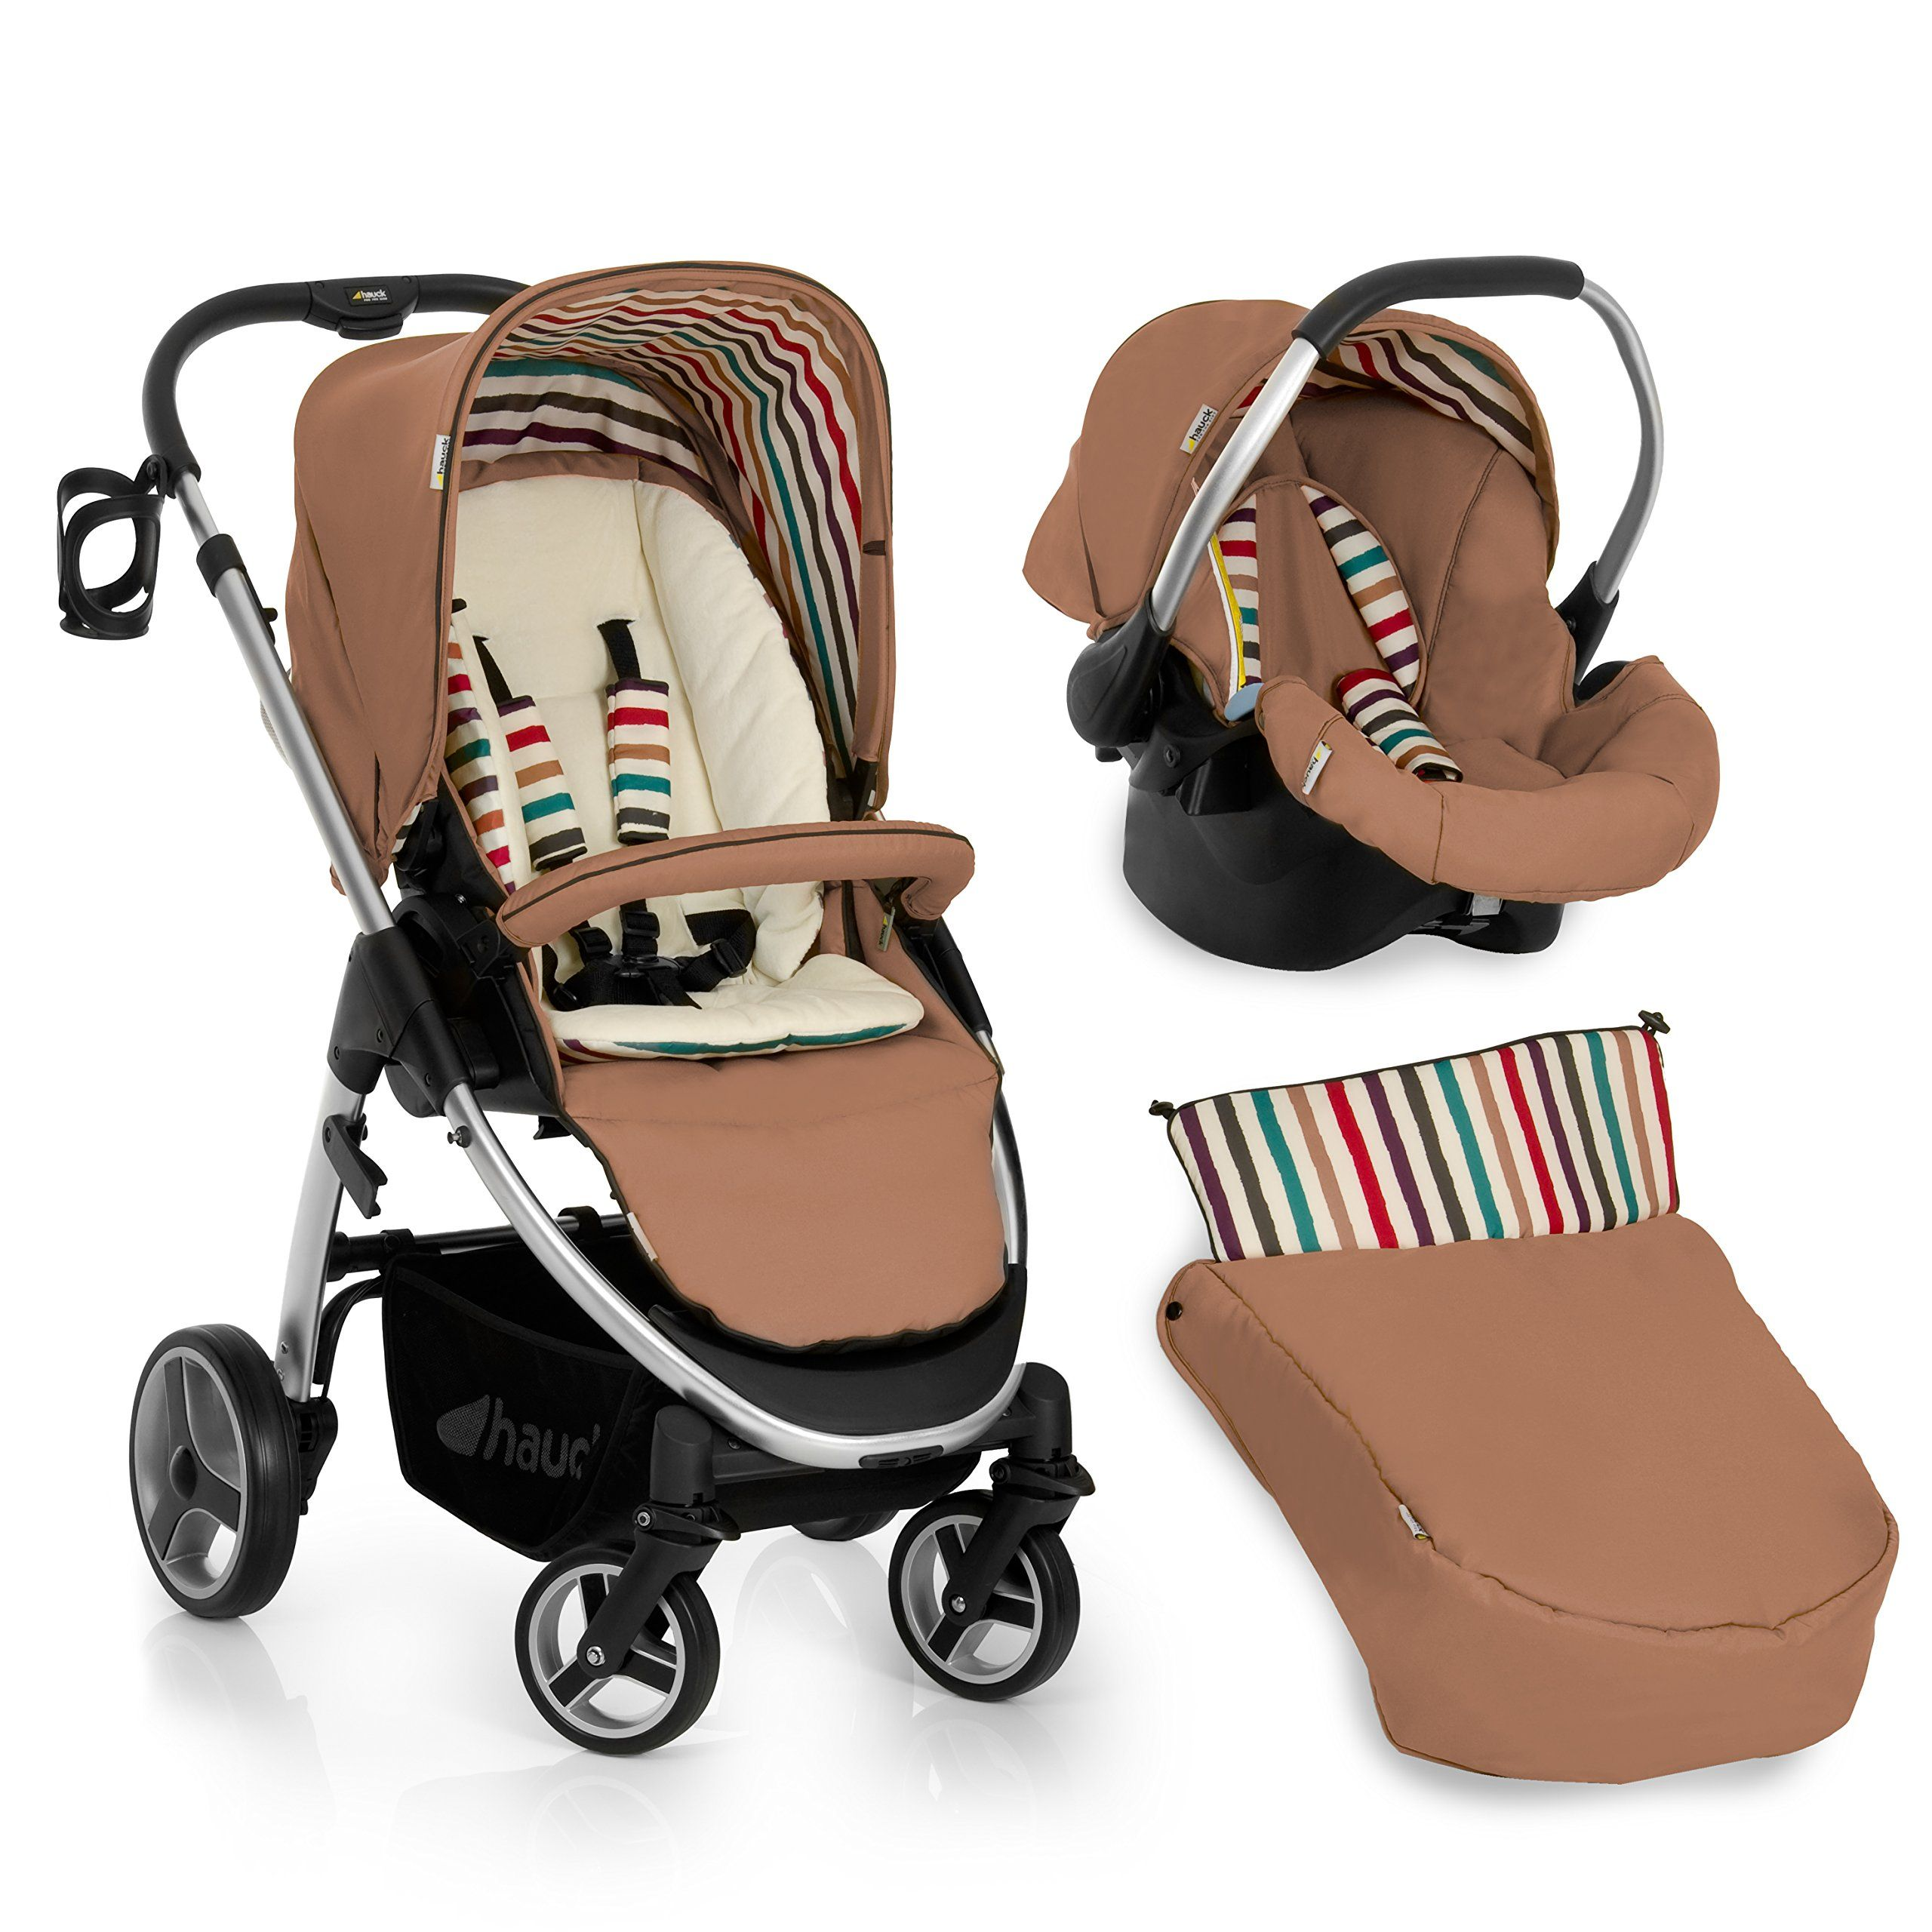 Shop Baby strollers, Best baby strollers, Travel system